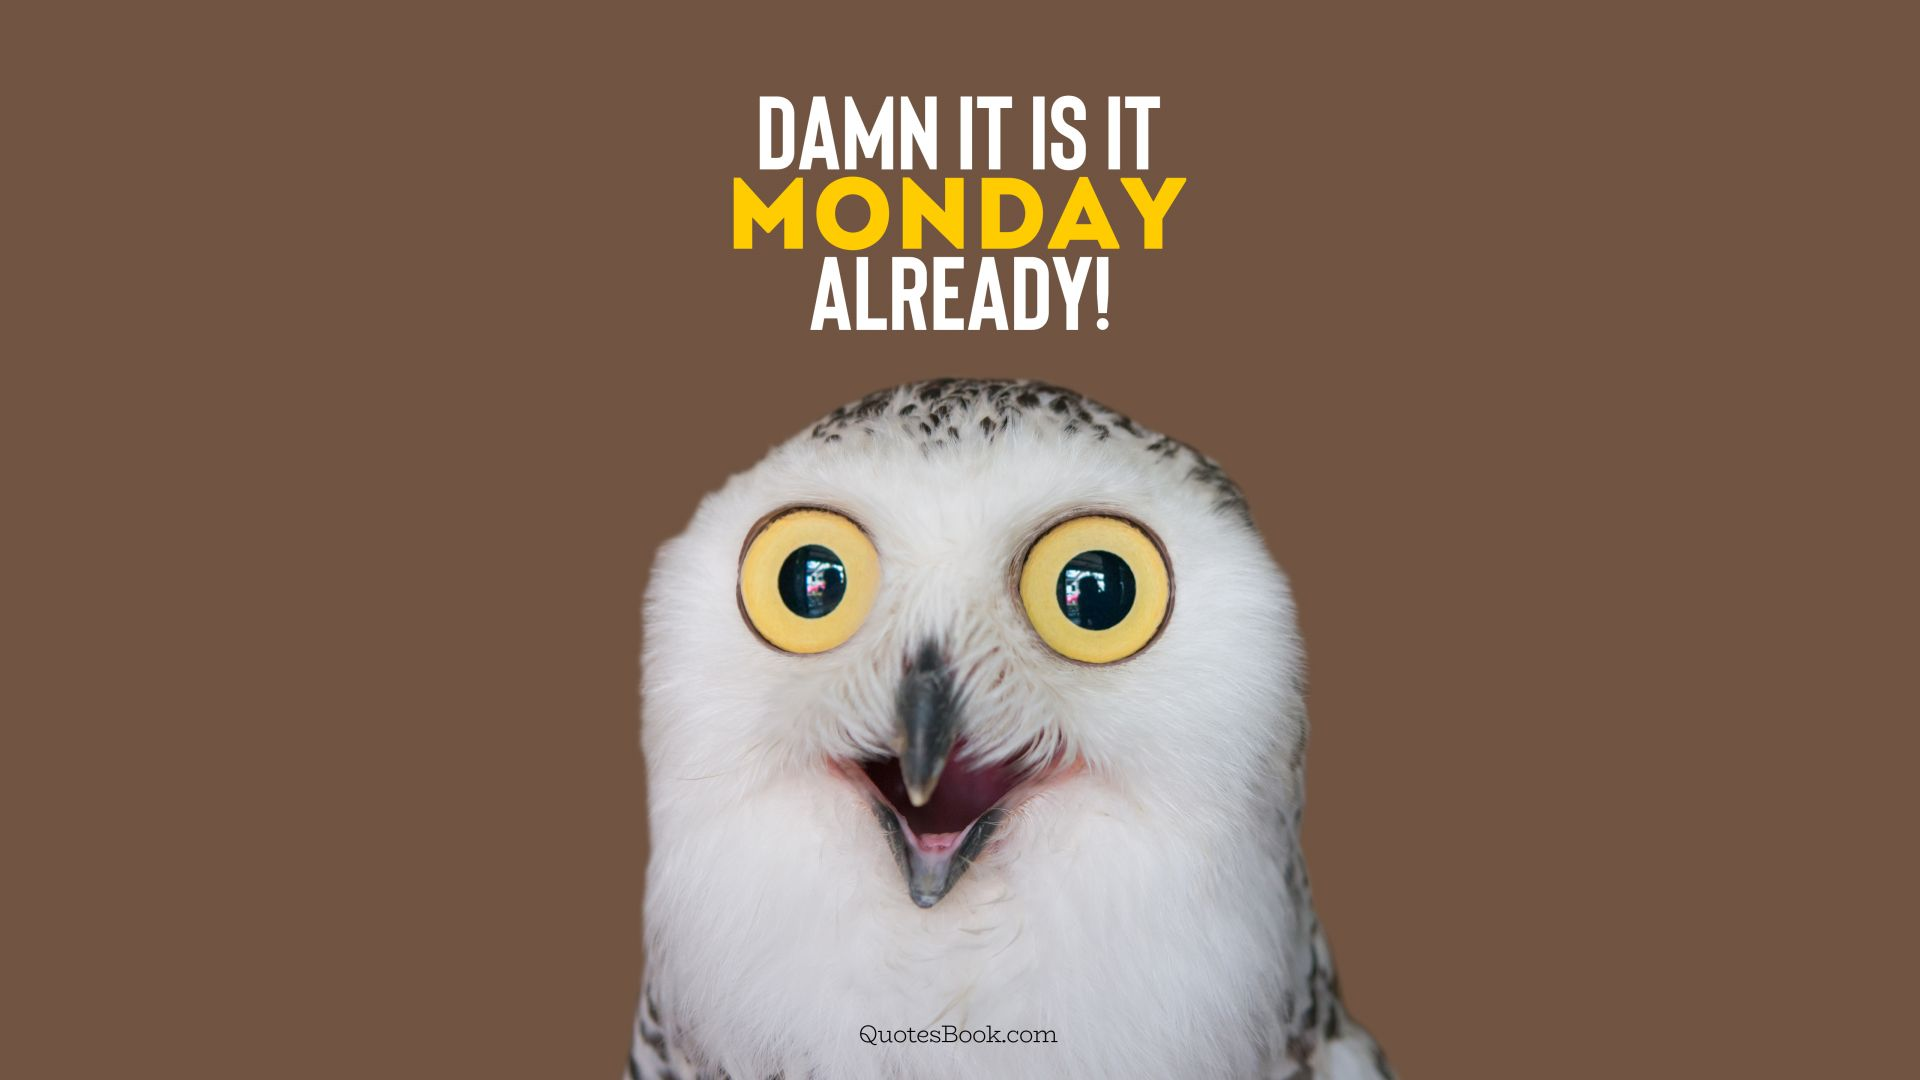 Damn it's Monday already!